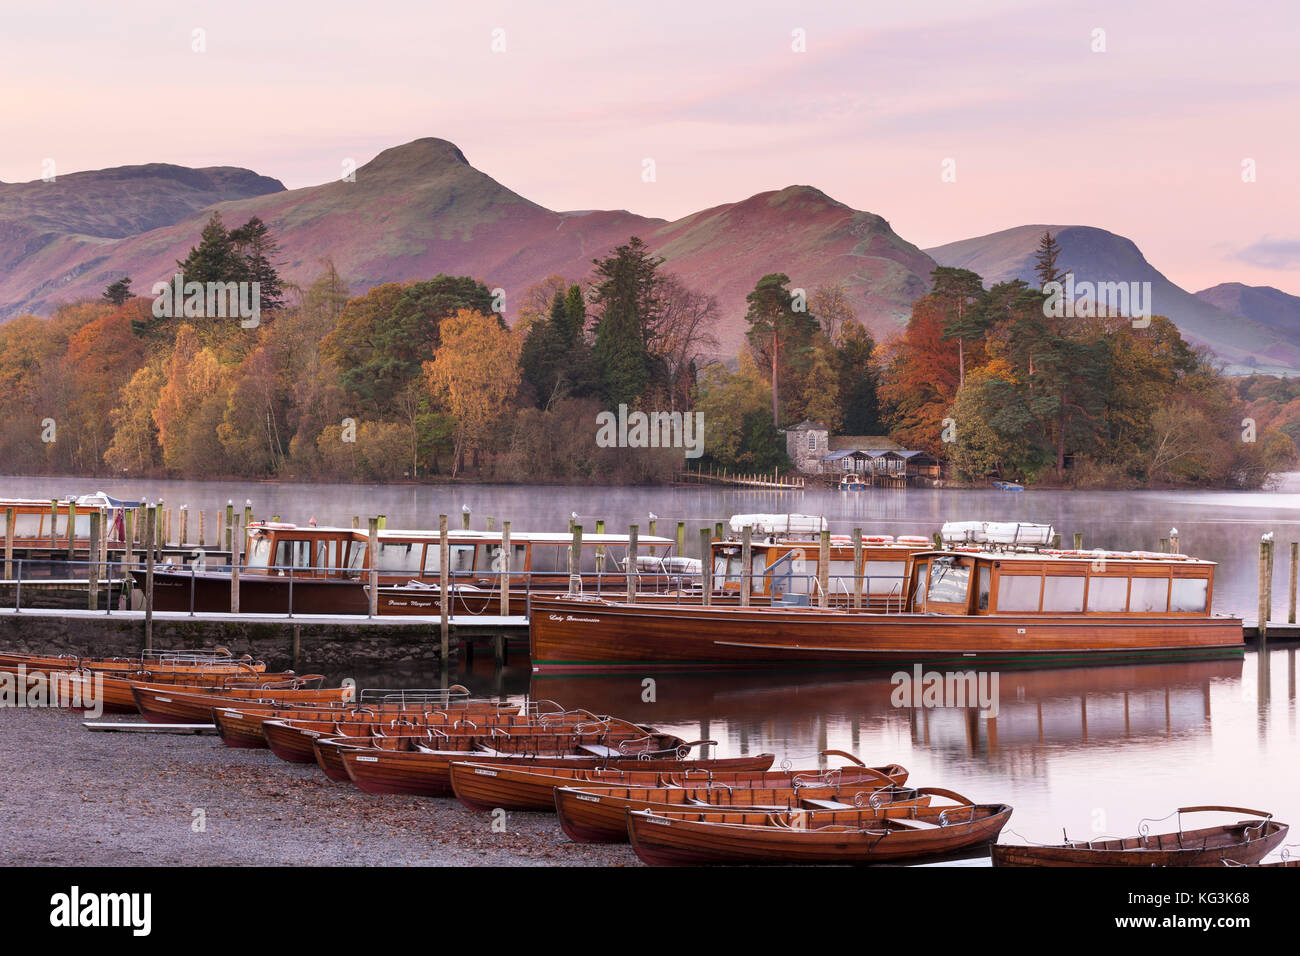 Early morning view of Derwent Water and Catbells in late autumn - Stock Image